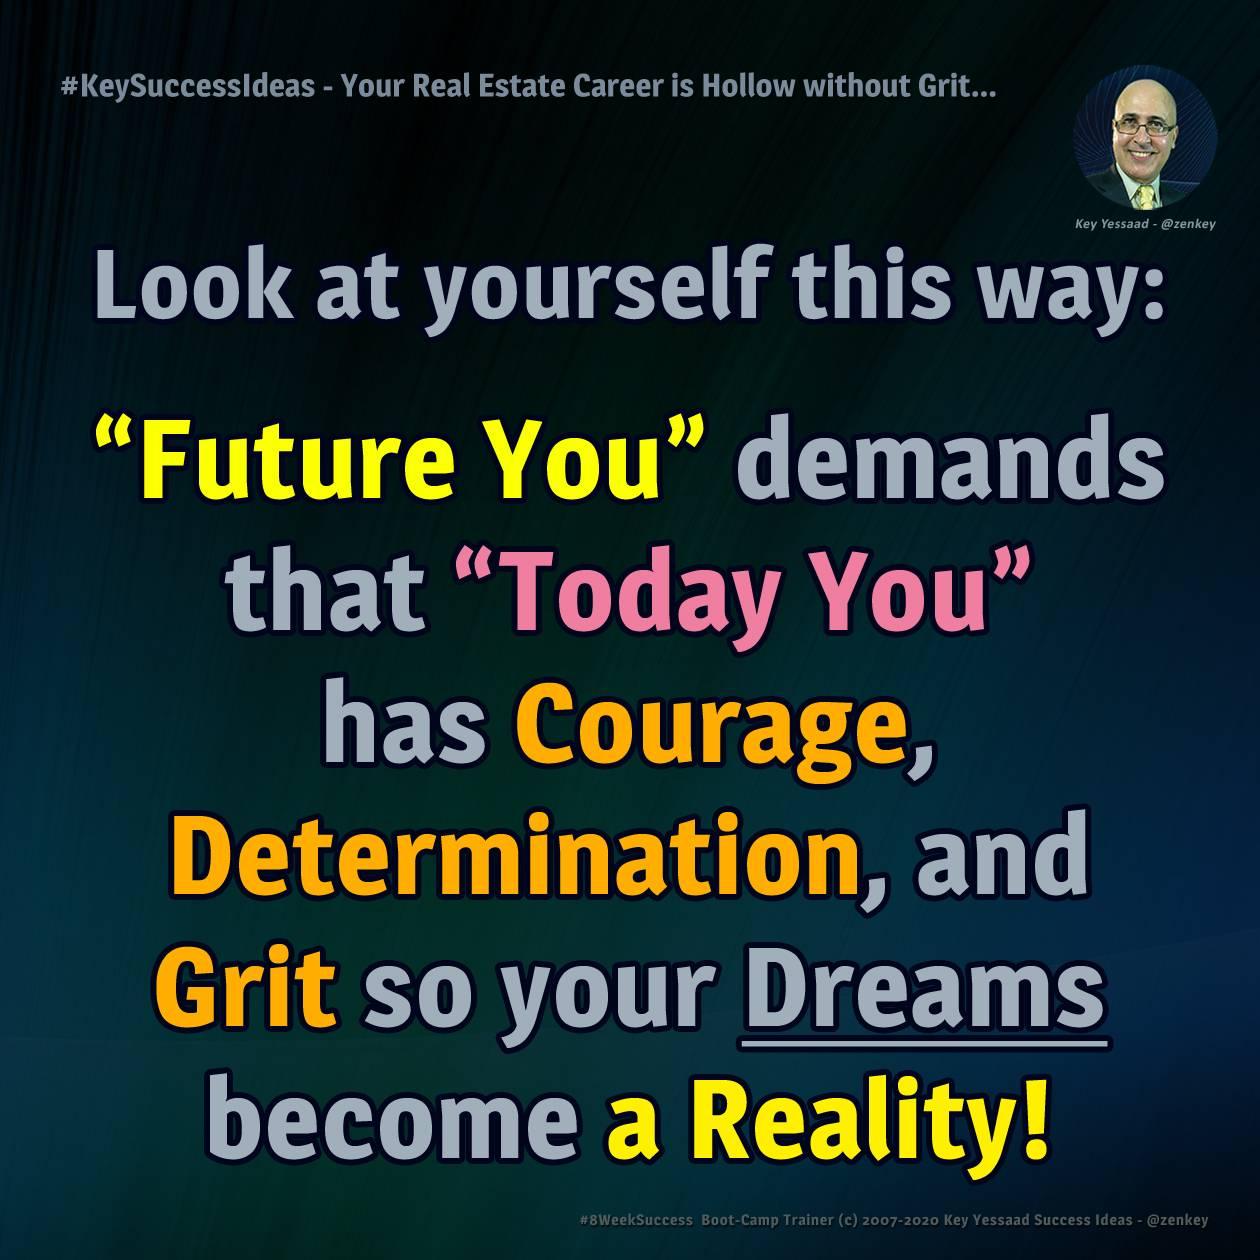 Your Real Estate Career is Hollow without Grit... - #KeySuccessIdeas